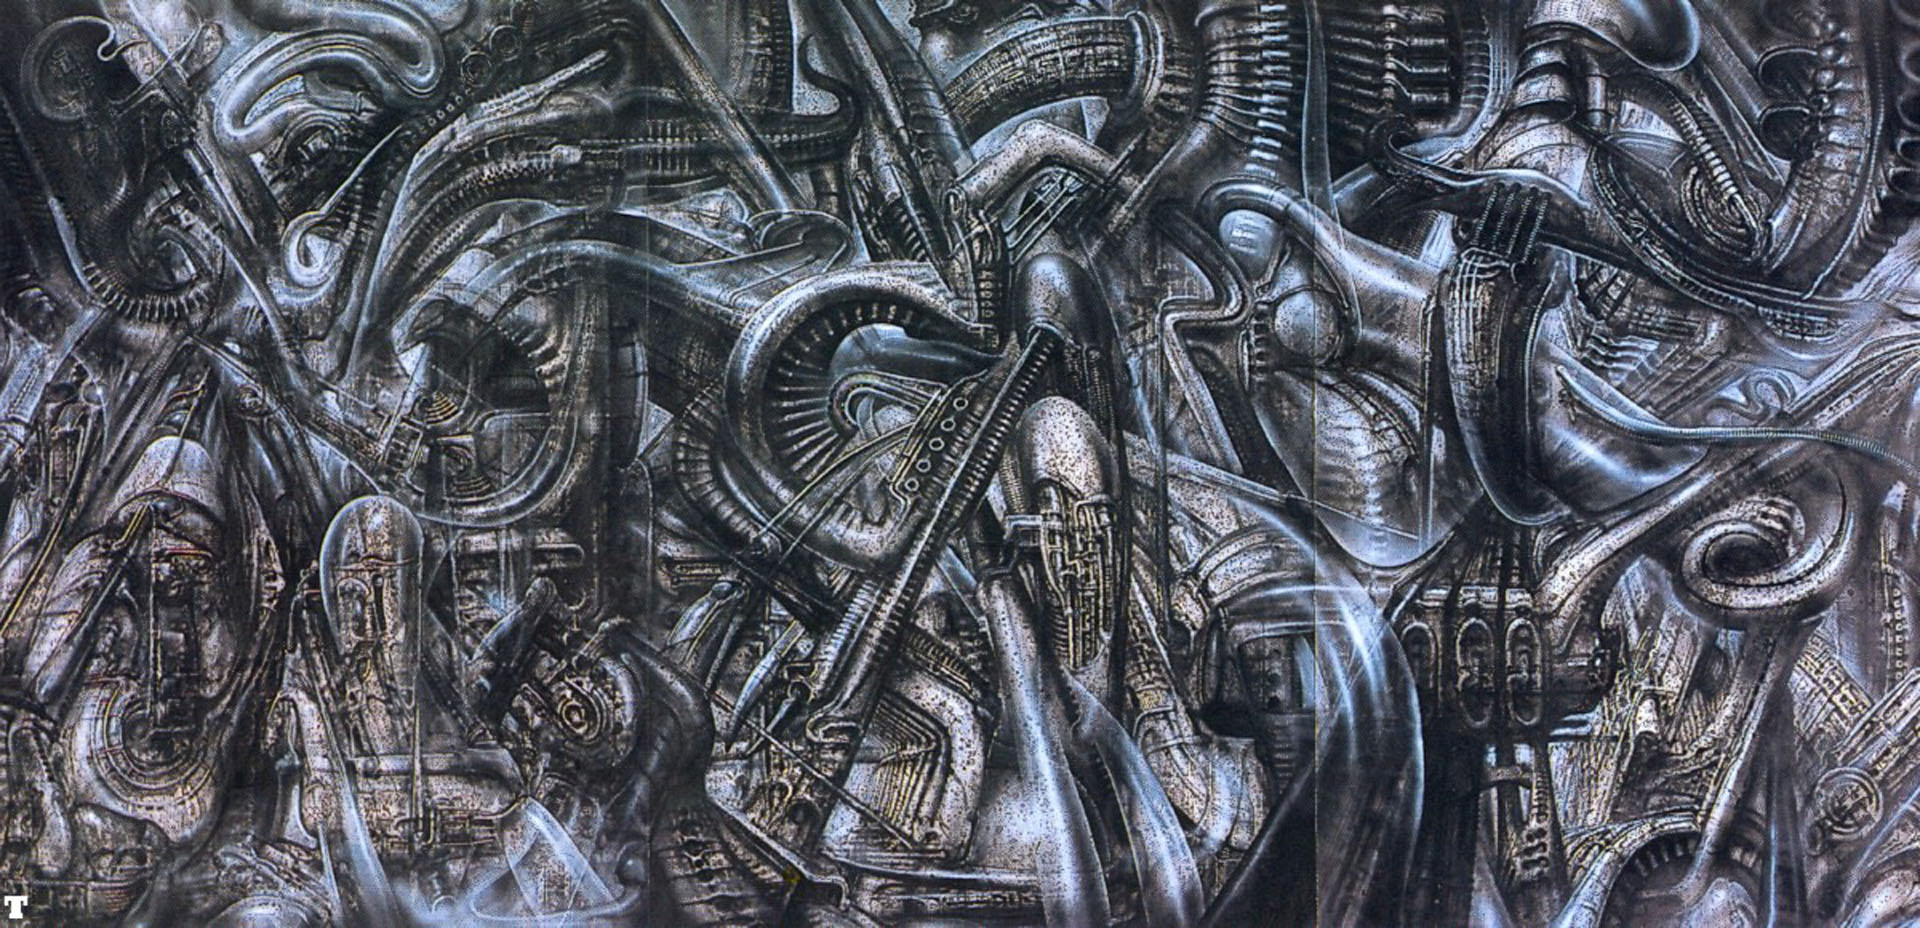 pics photos hr giger wallpaper